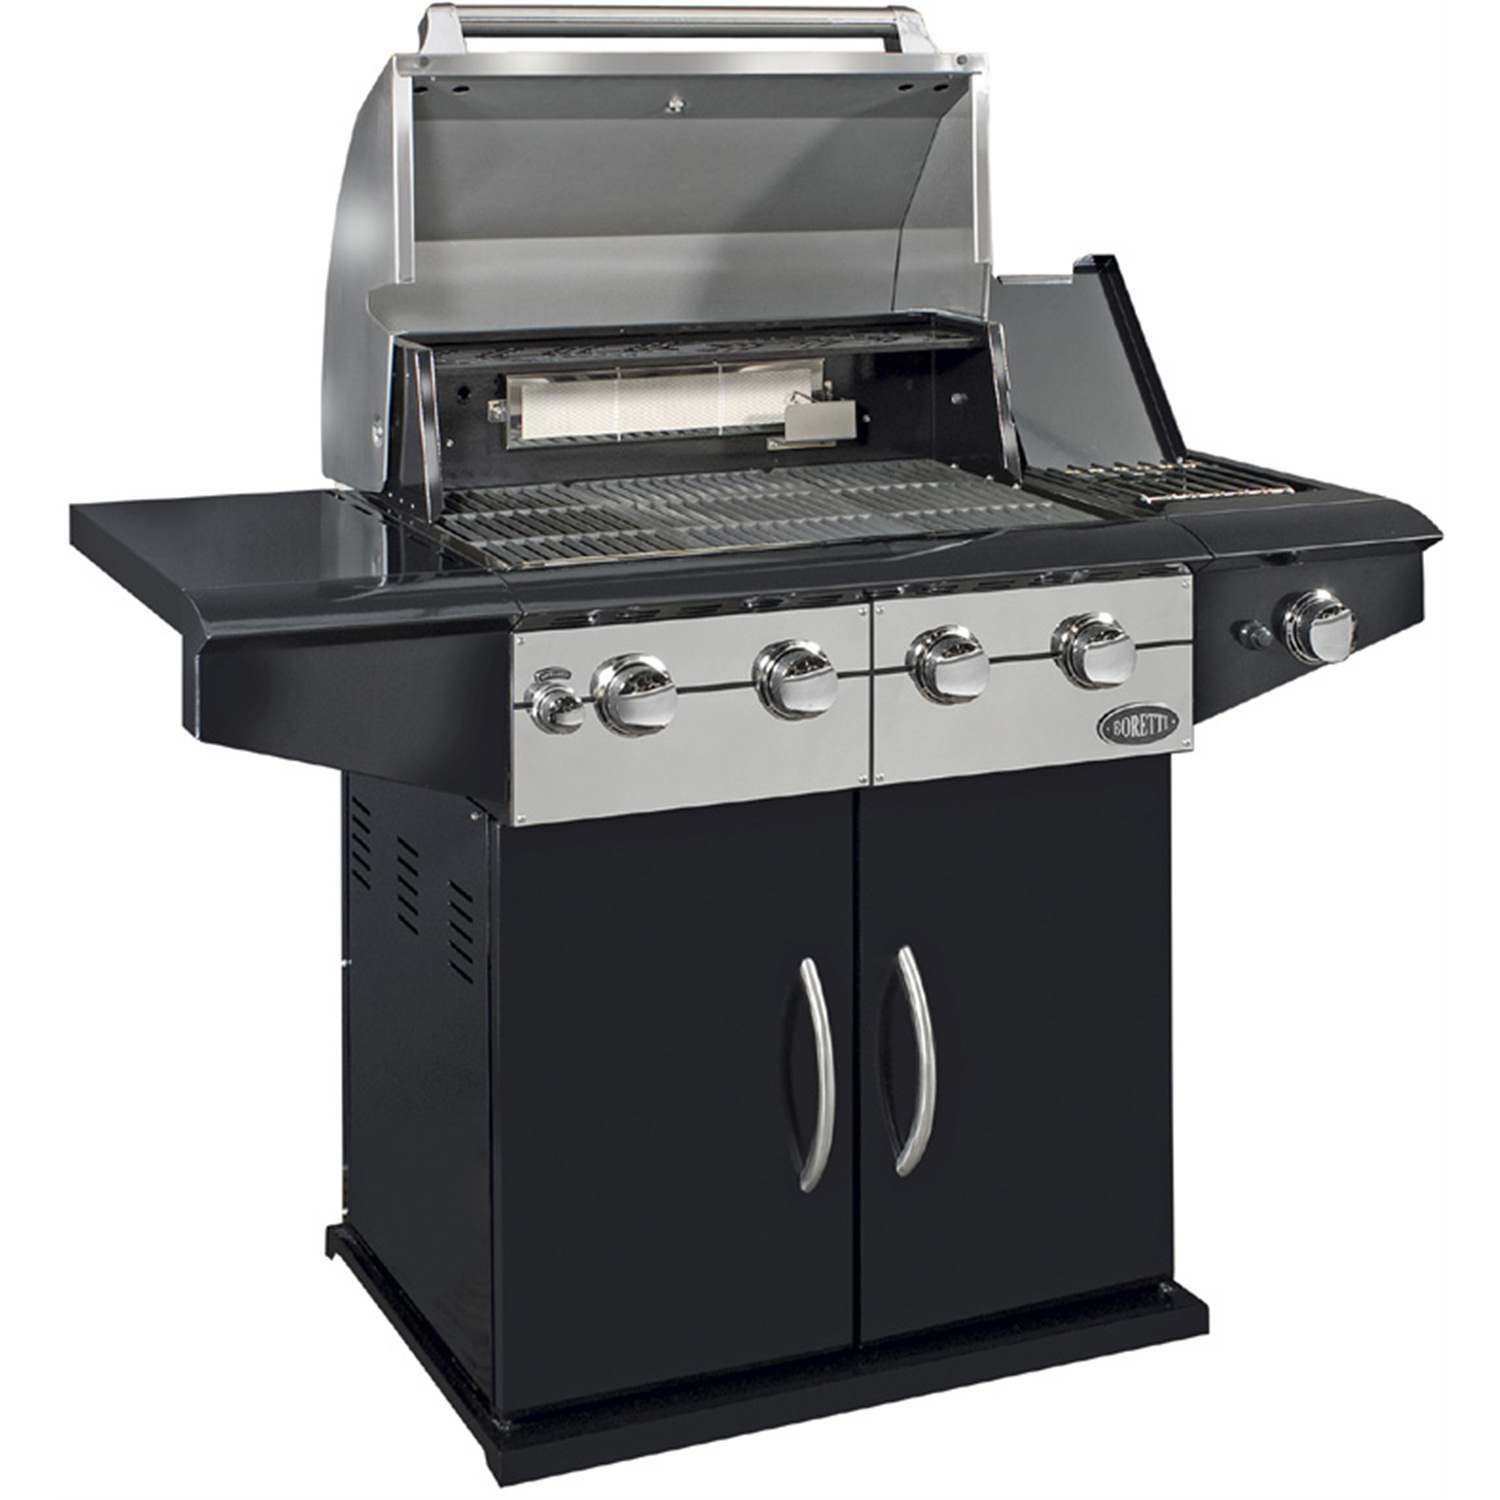 Boretti DaVinci Nero Gas Outdoor Kitchen